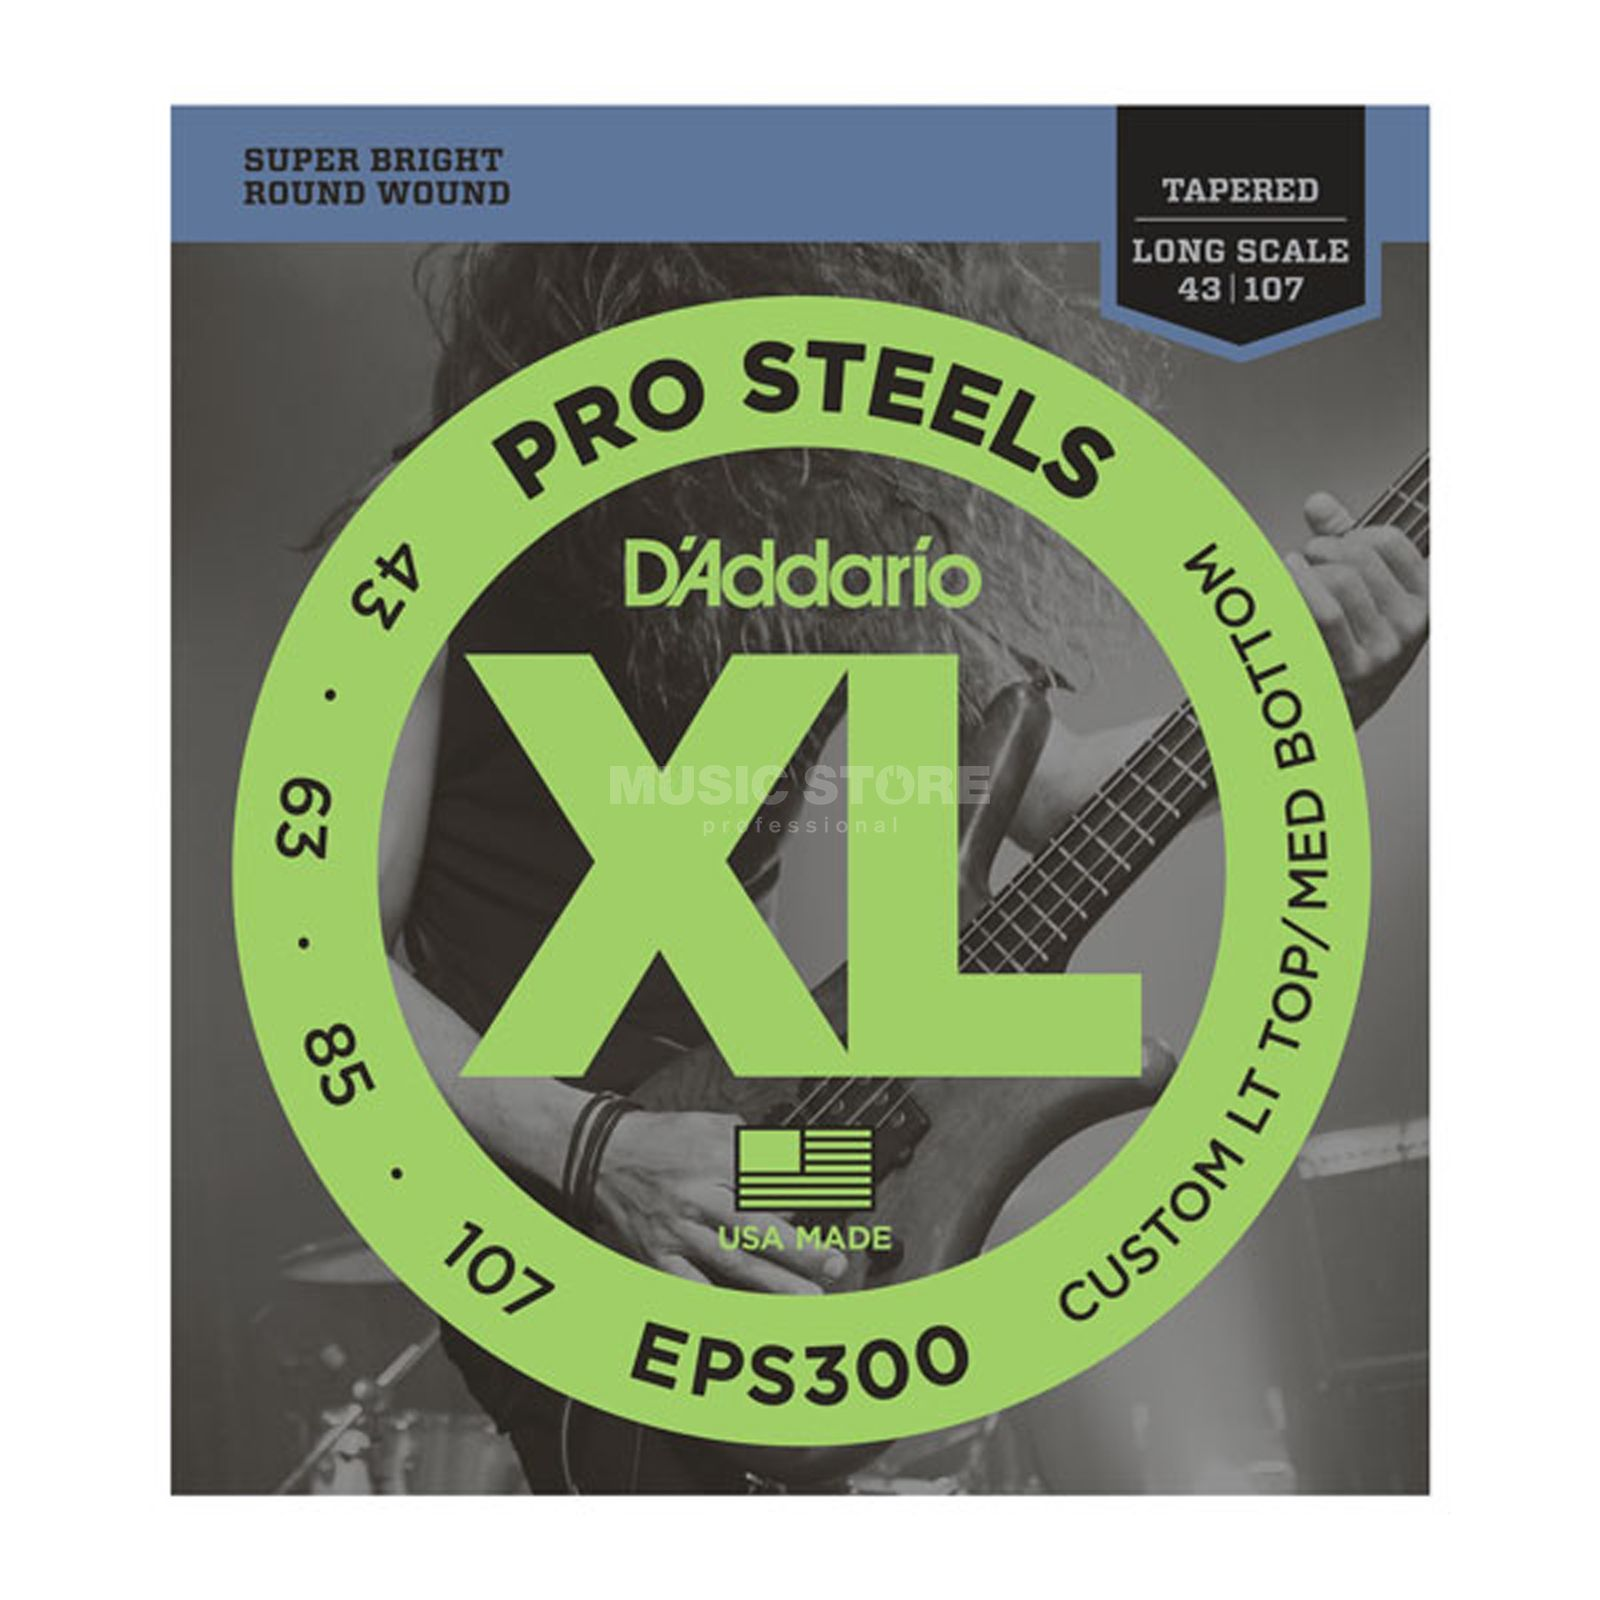 D'Addario Bass Strings Pro Steels 43-107 43-60-85-107, EPS300 Изображение товара